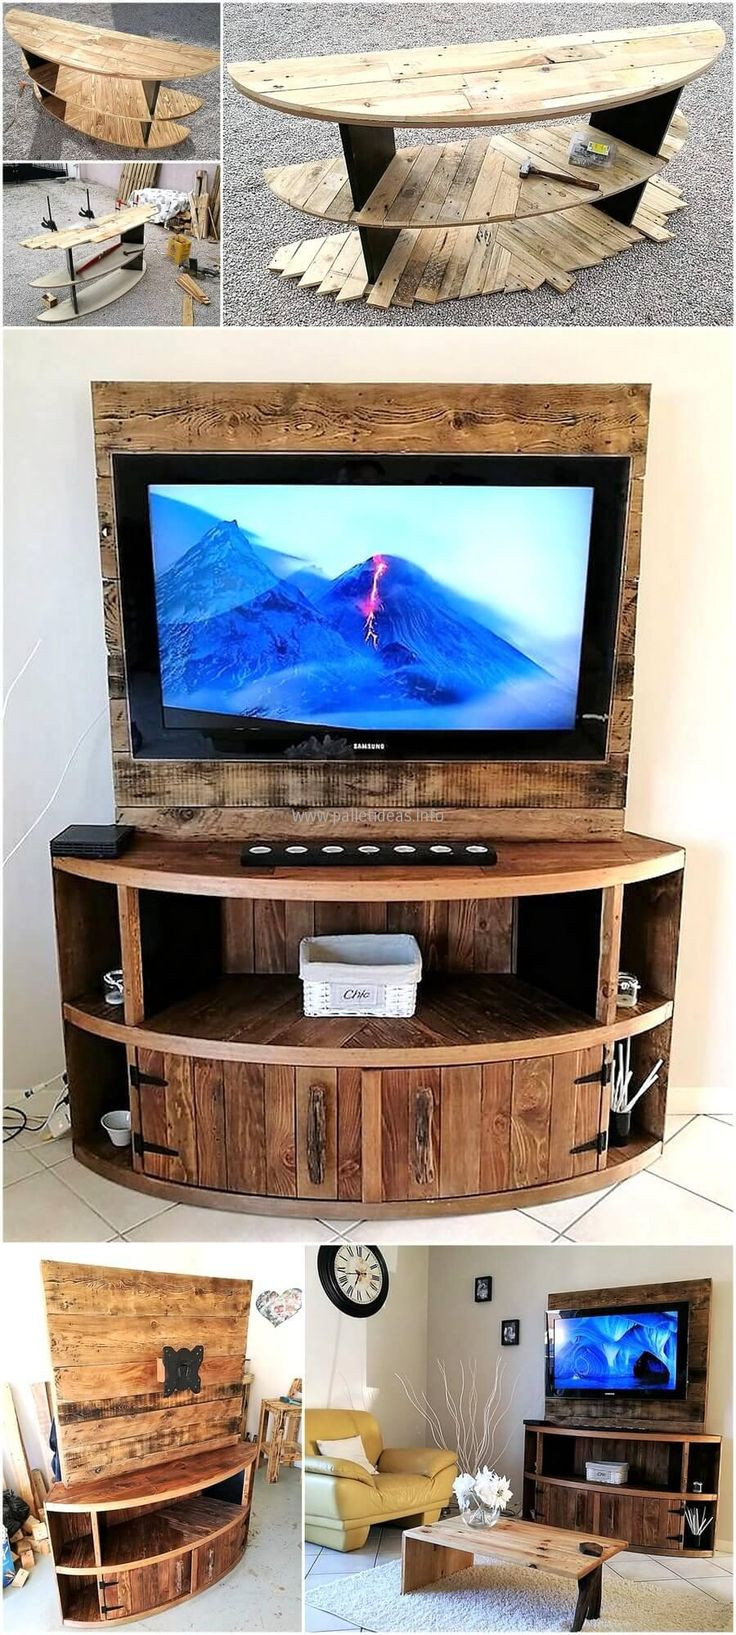 Best ideas about Tv Stand DIY . Save or Pin Best 25 Pallet tv stands ideas on Pinterest Now.